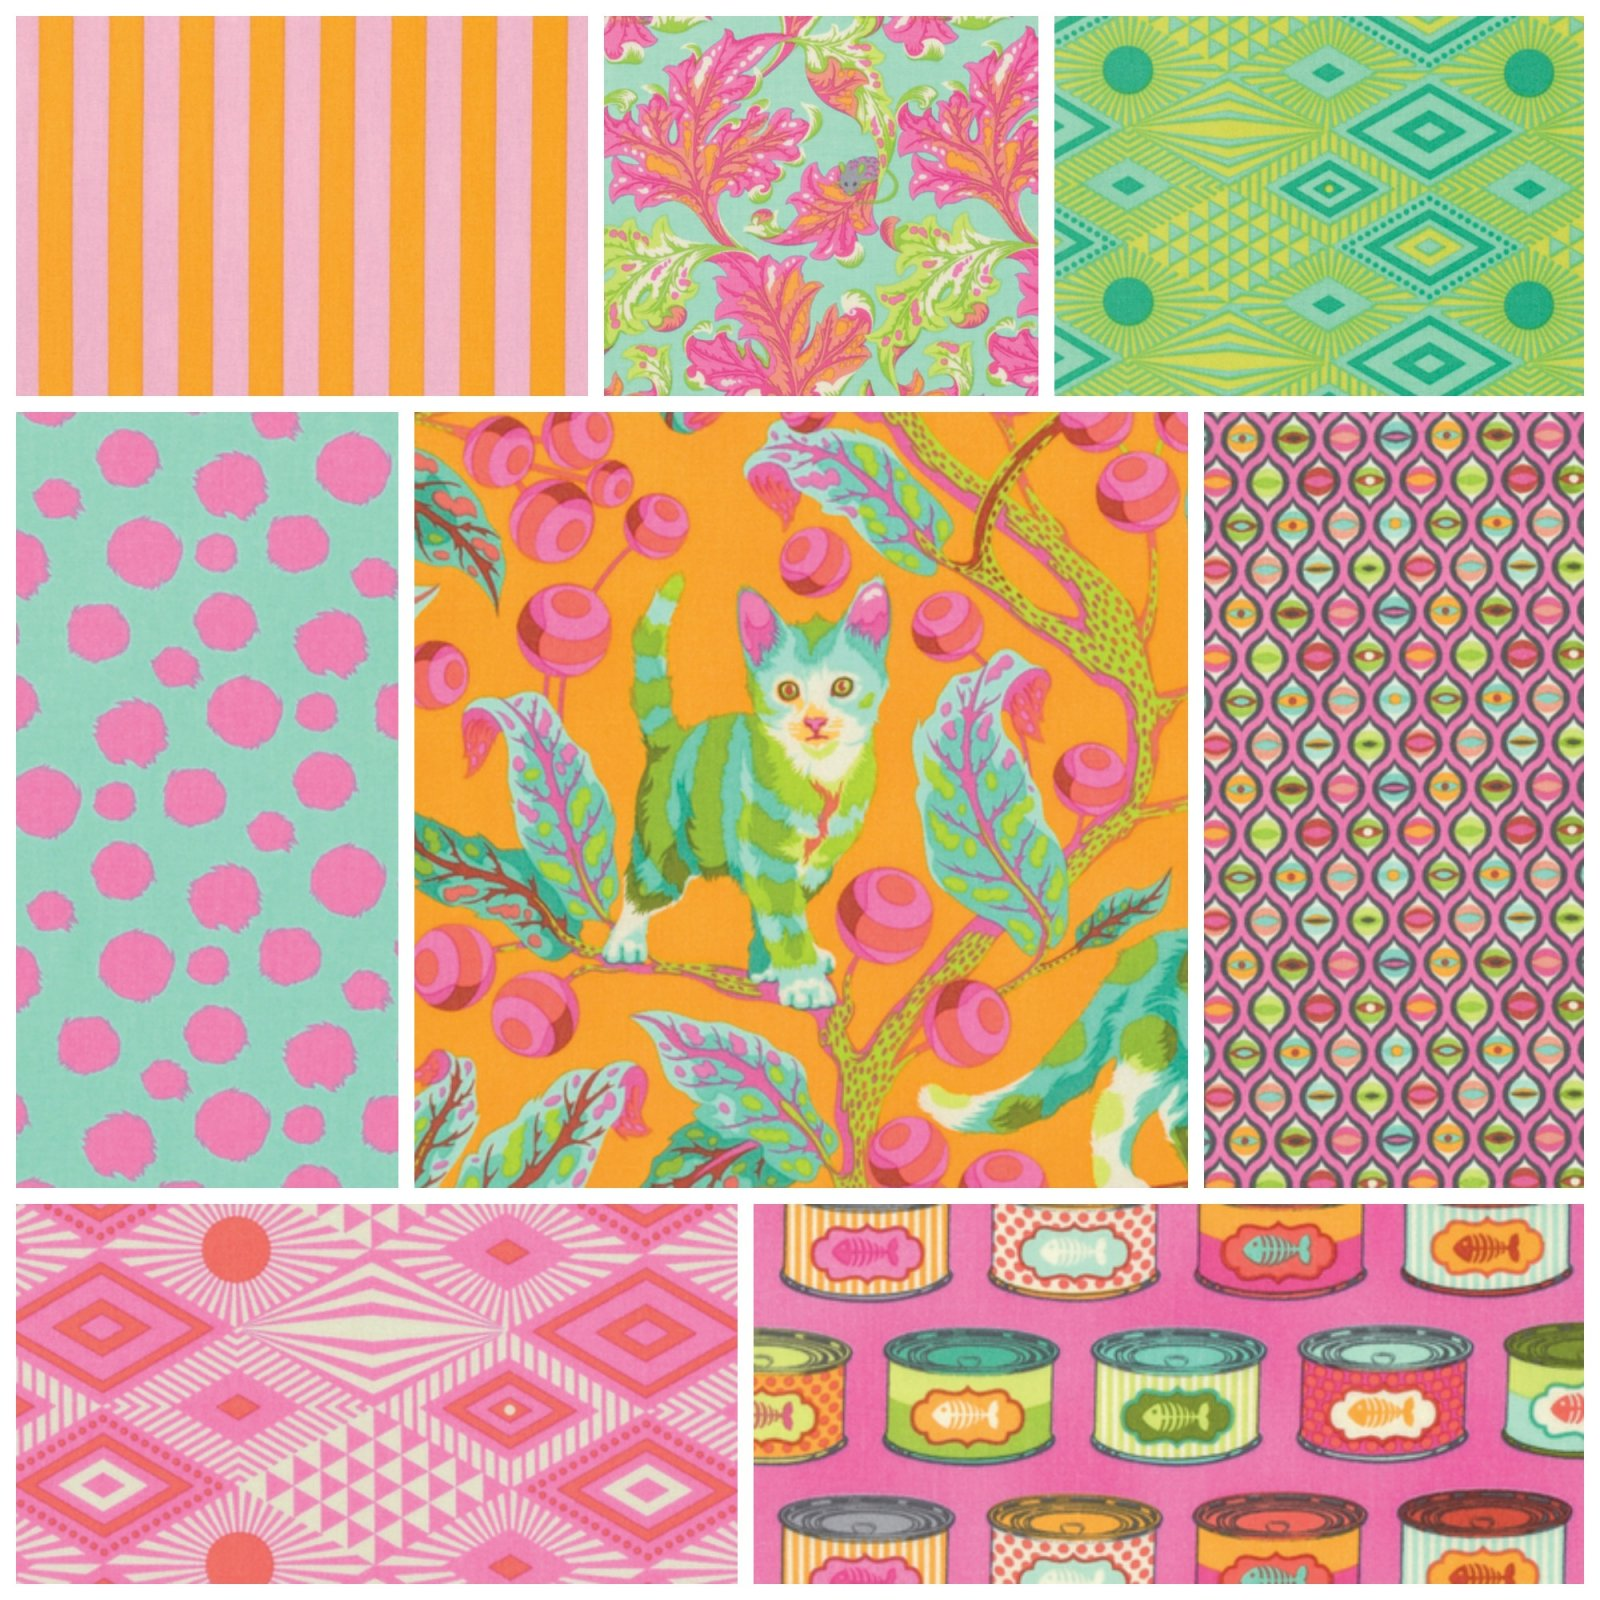 Tabby Road by Tula Pink Fat Quarter Bundle in Marmalade Skies - 8 count